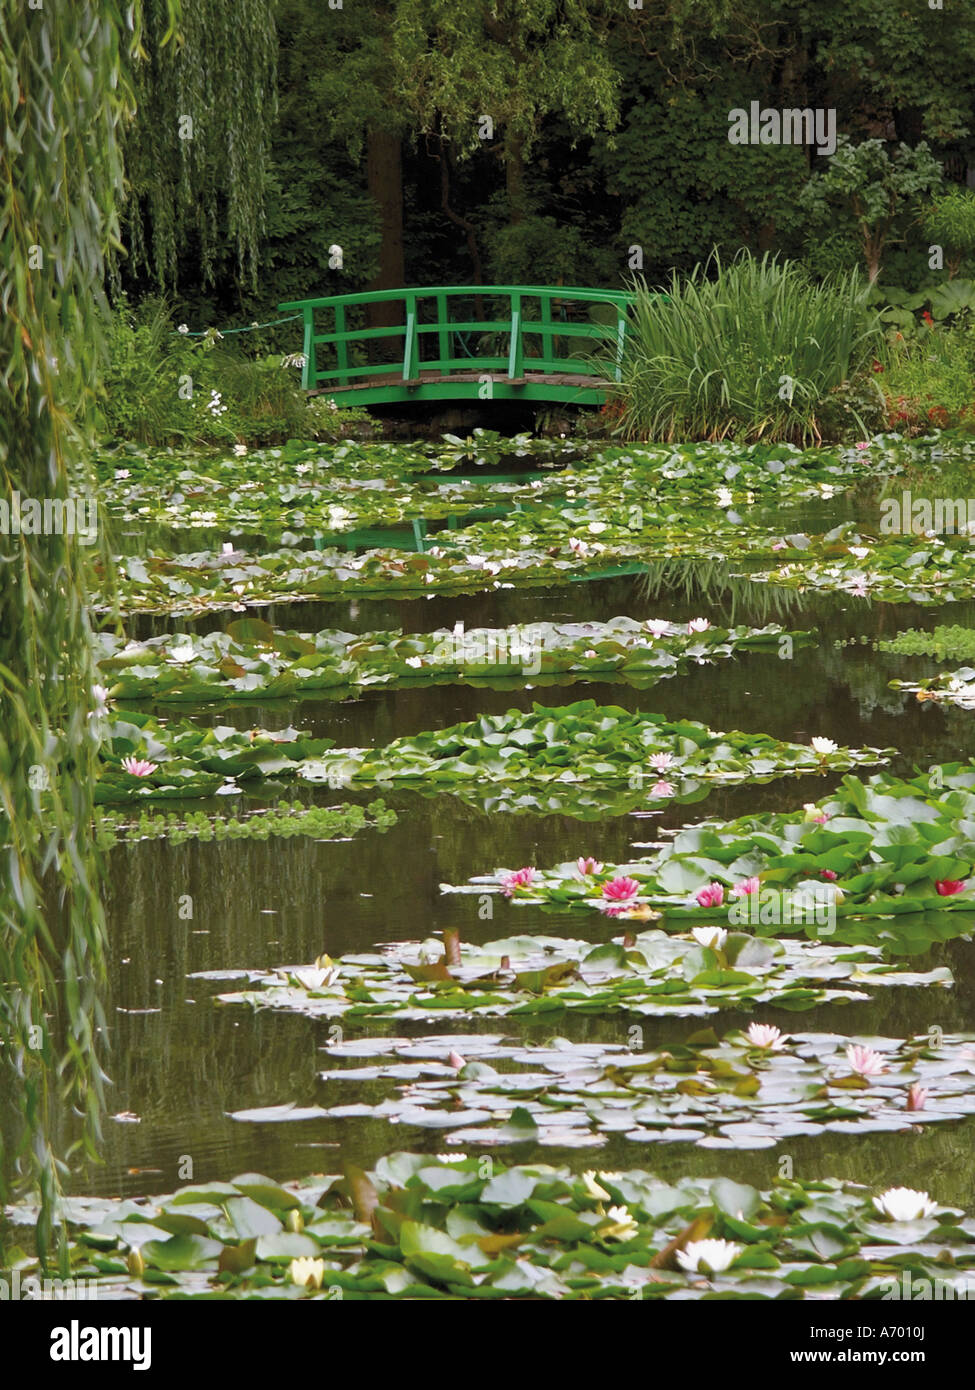 Japanese Bridge And Lily Pond In The Garden Of The Impressionist Painter  Claude Monet Giverny Eure Normandy France Europe